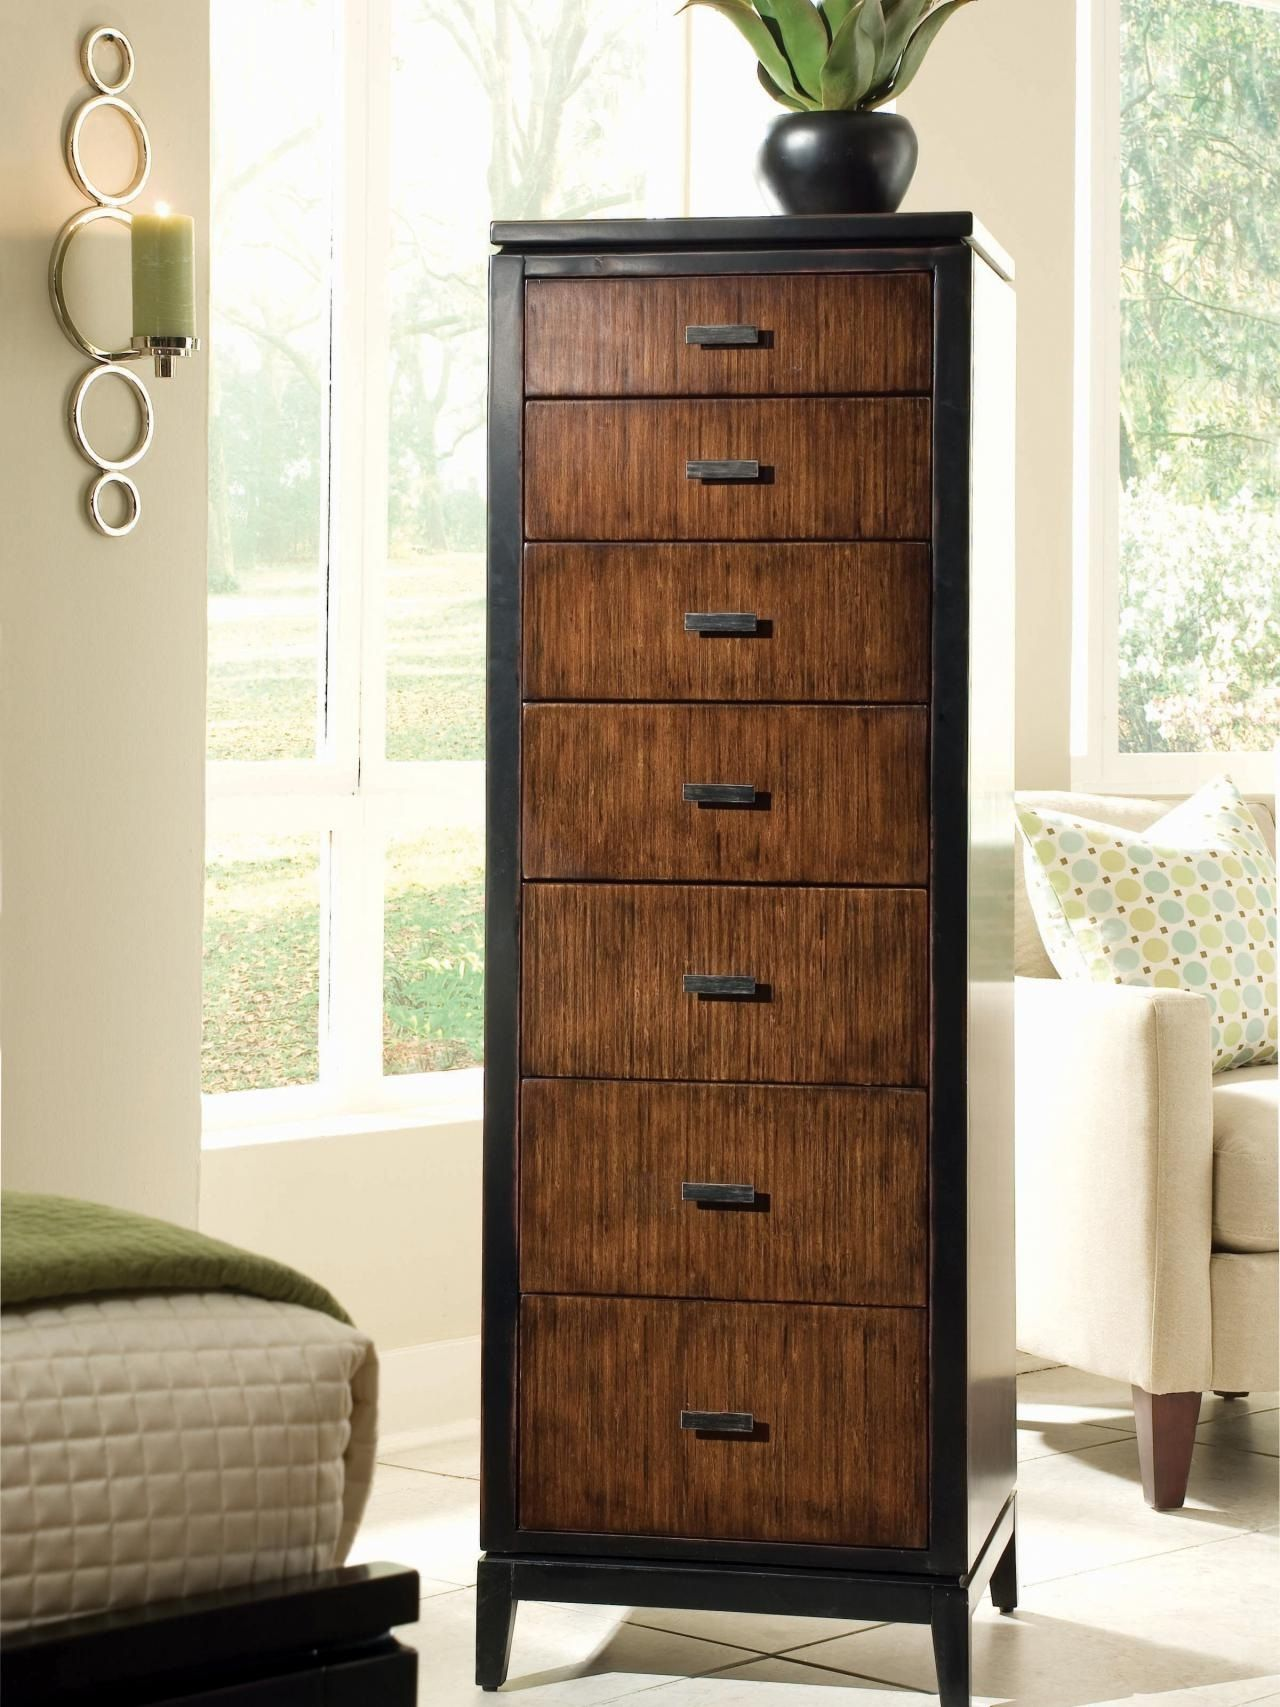 Awesome Tall Narrow Dresser Tall Narrow Dresser Narrow Dresser Narrow Bedroom